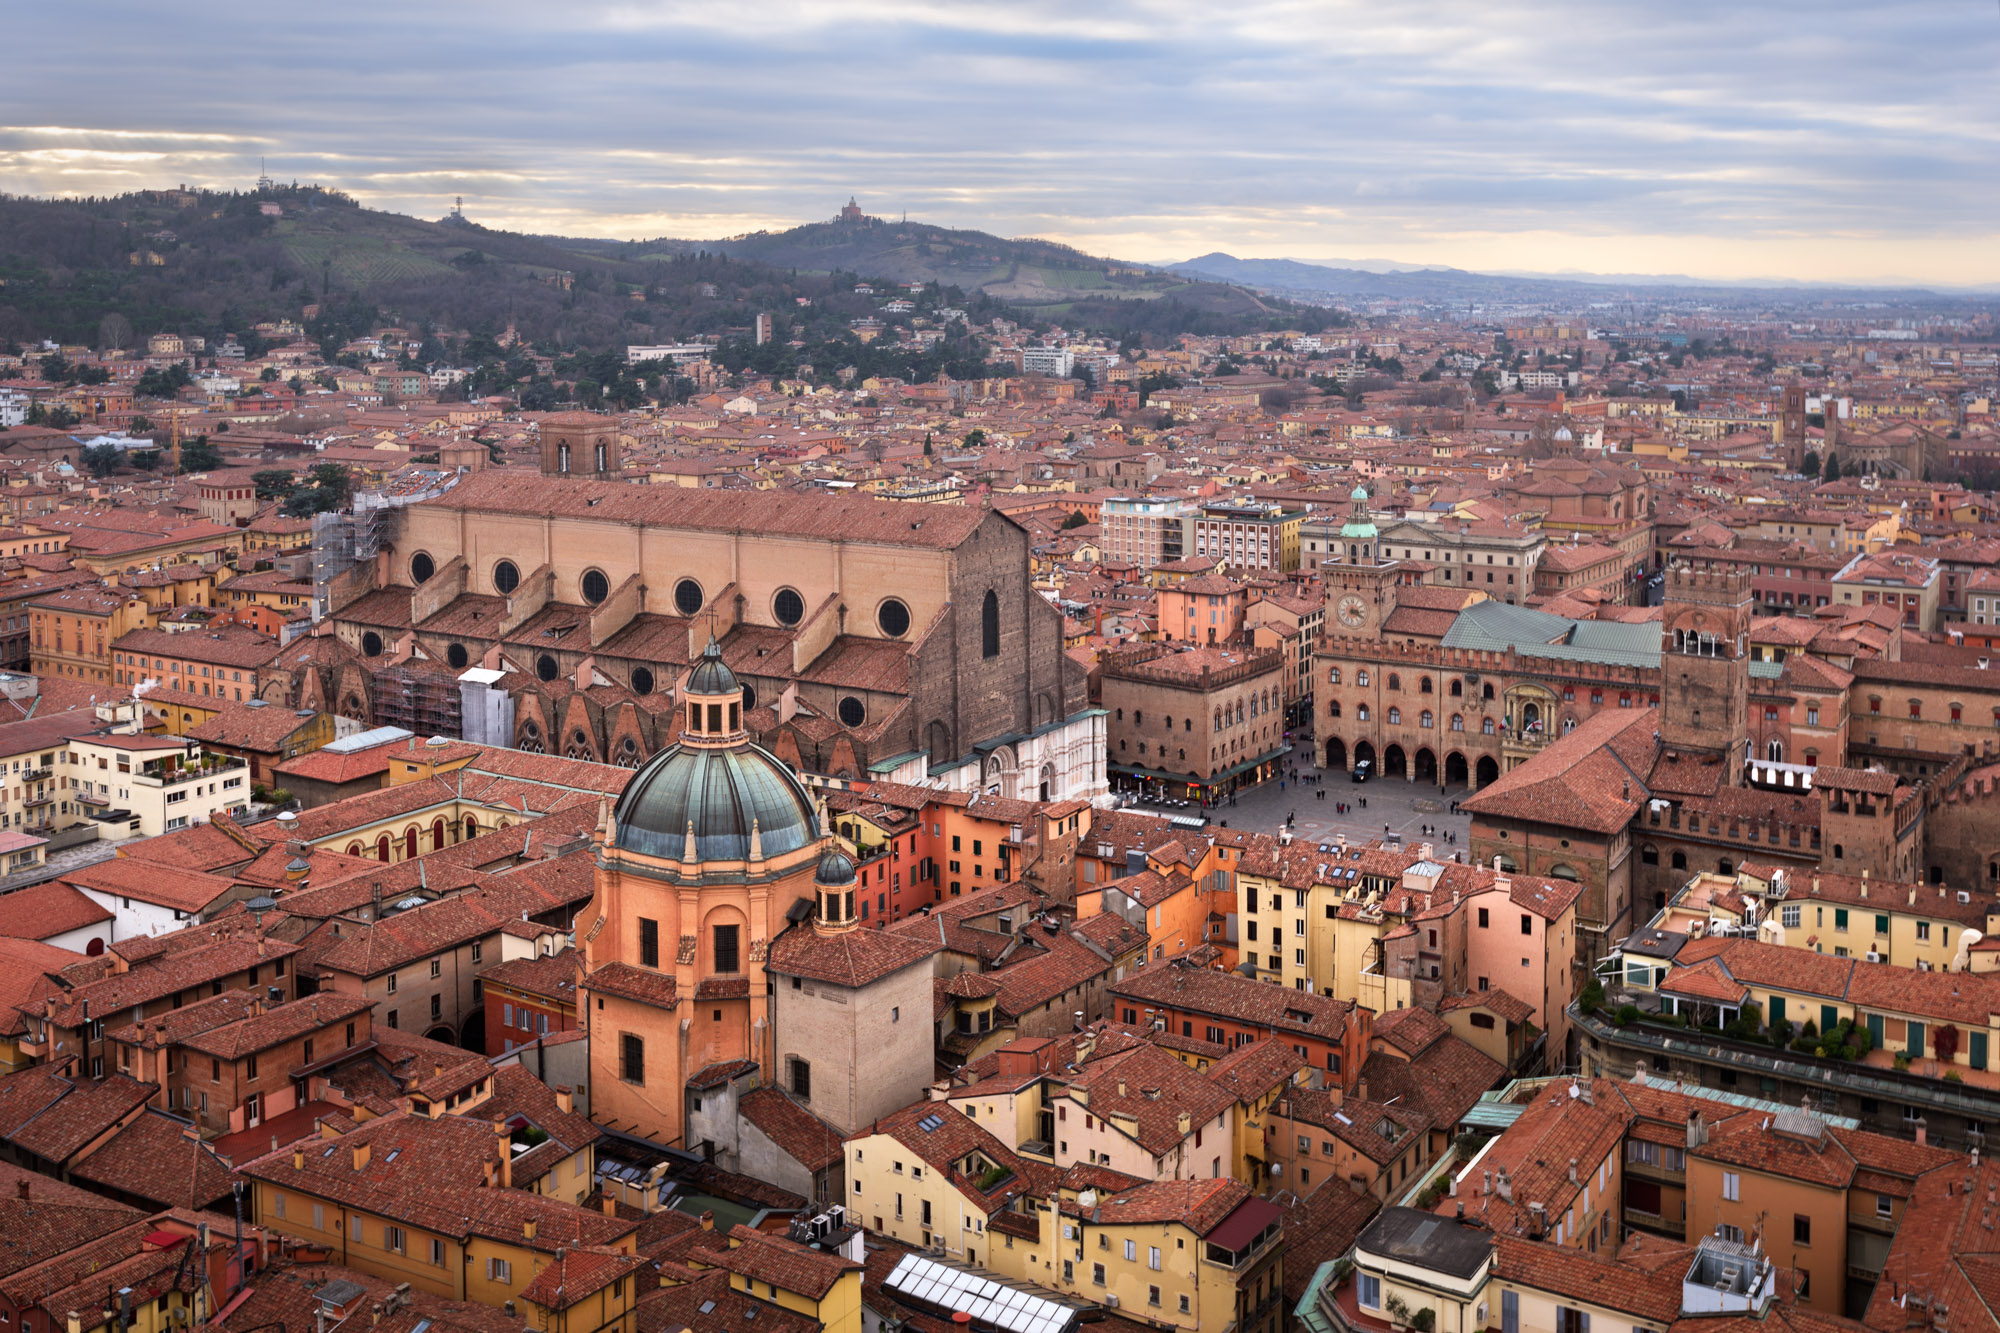 Bologna from Asinelli Tower, Bologna, Italy